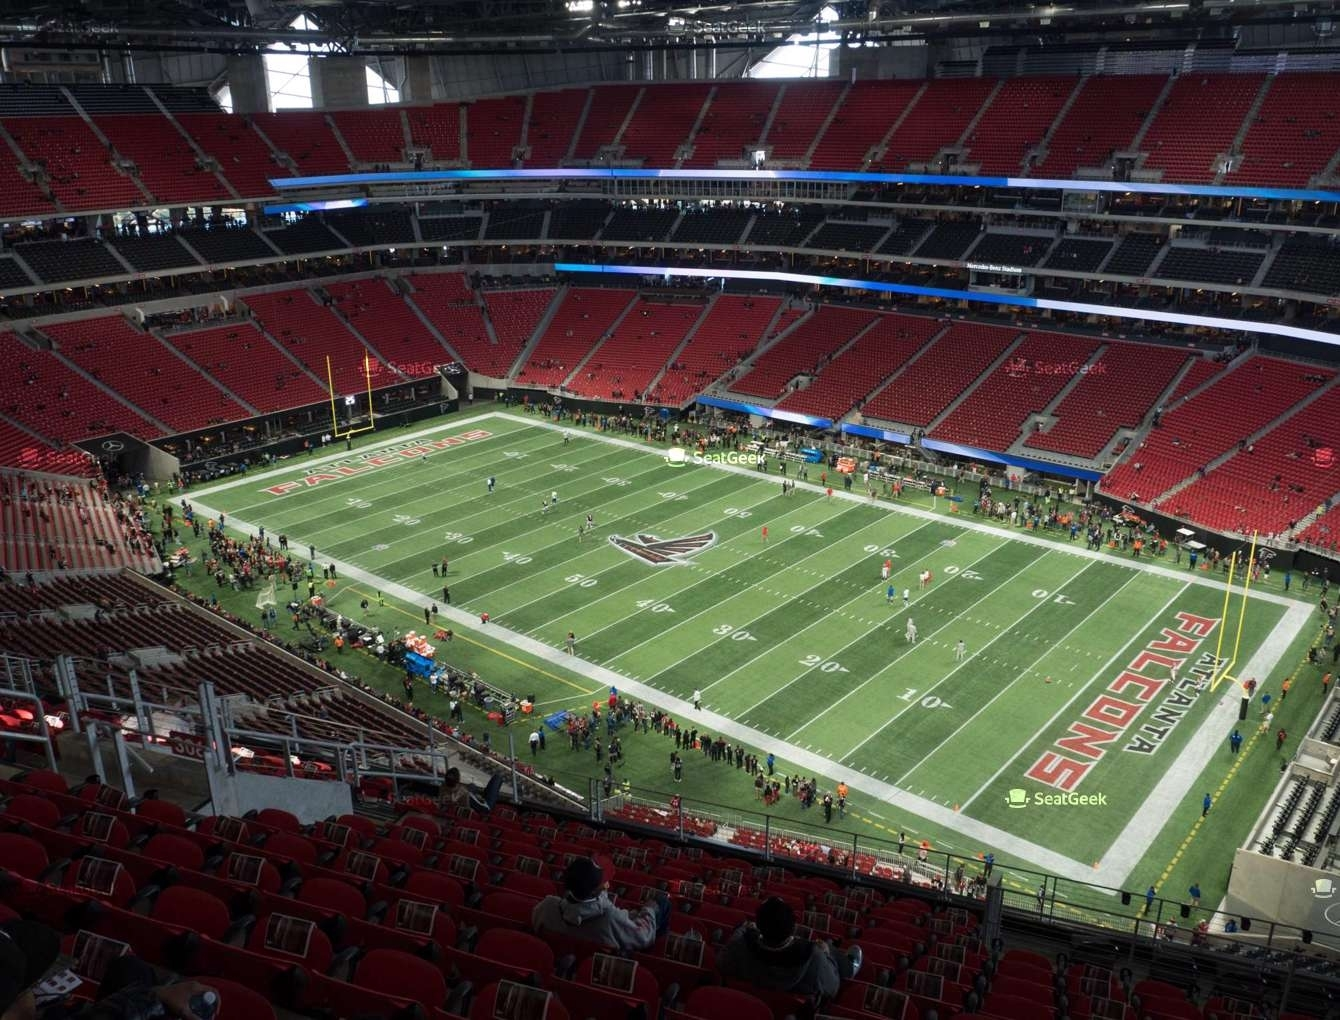 Mercedes-Benz Stadium Section 306 Seat Views | Seatgeek intended for Atlanta Stadium Super Bowl Seating Chart